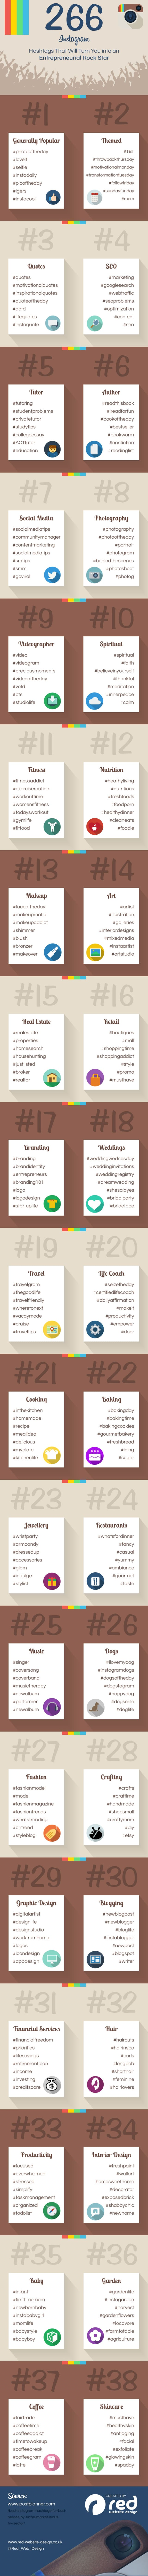 266 Popular Instagram Hashtags Infographic